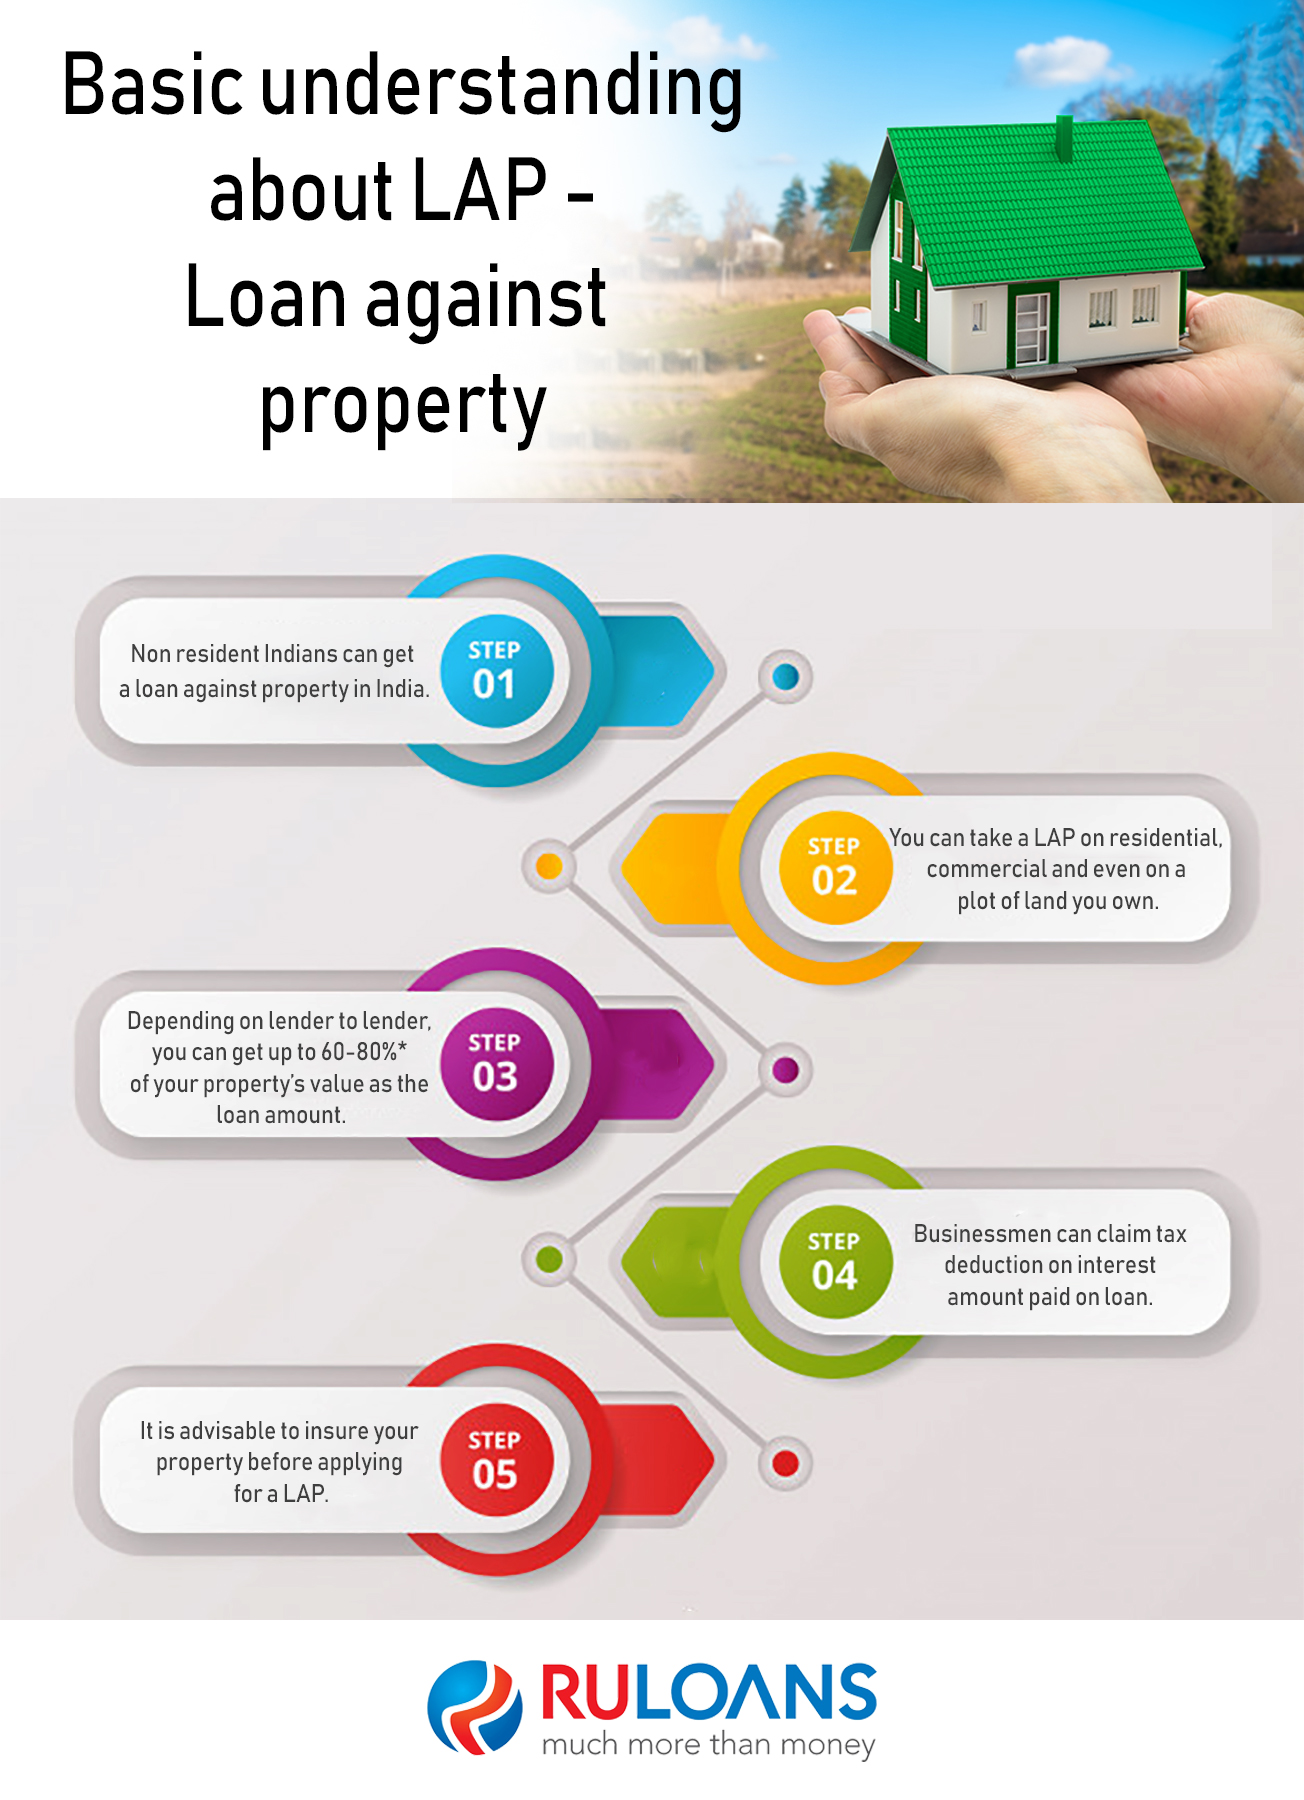 Basic understanding about Loan against property